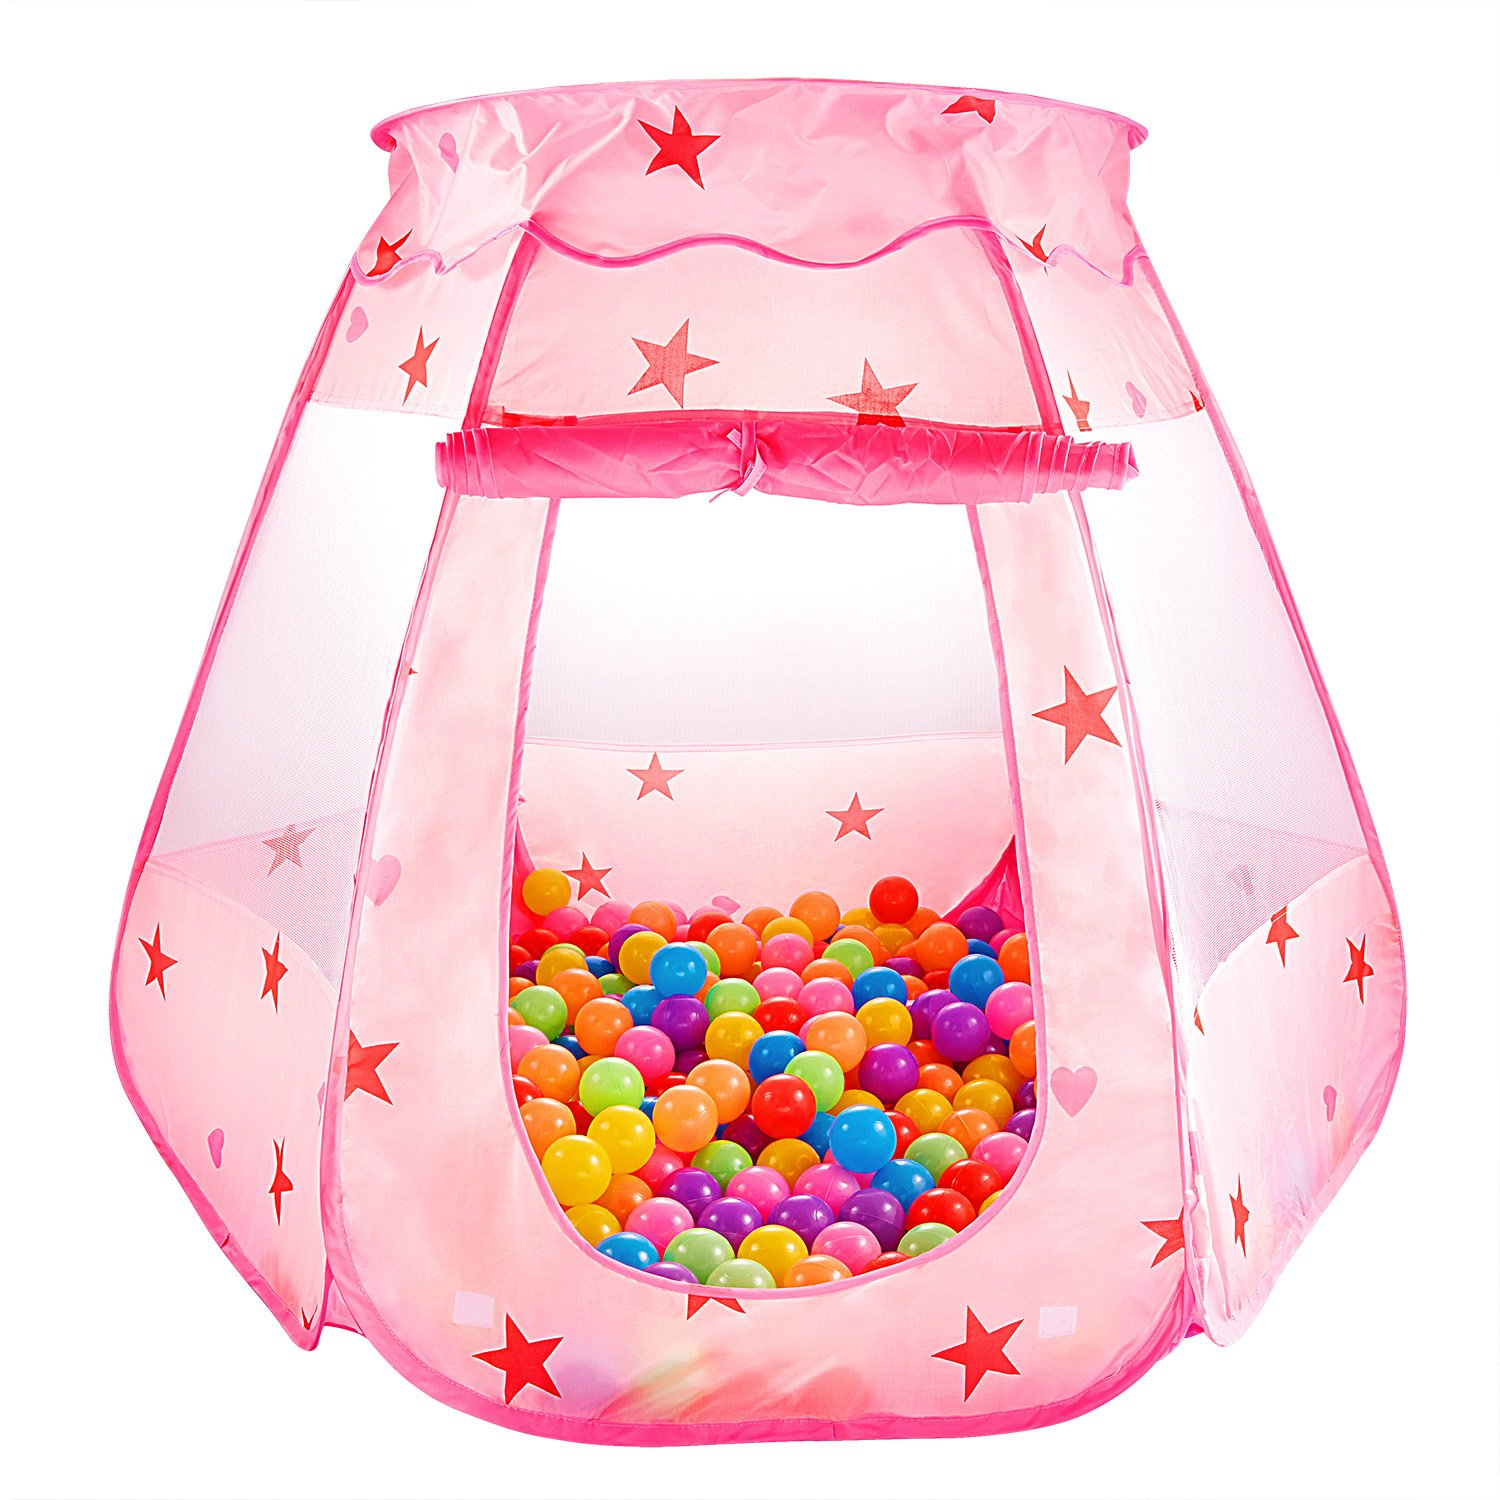 CASA MALL Kids Princess Play Tent Foldable Popup Balls House for Children Indoor and Outdoor, 47'' L x 35'' H, Pink